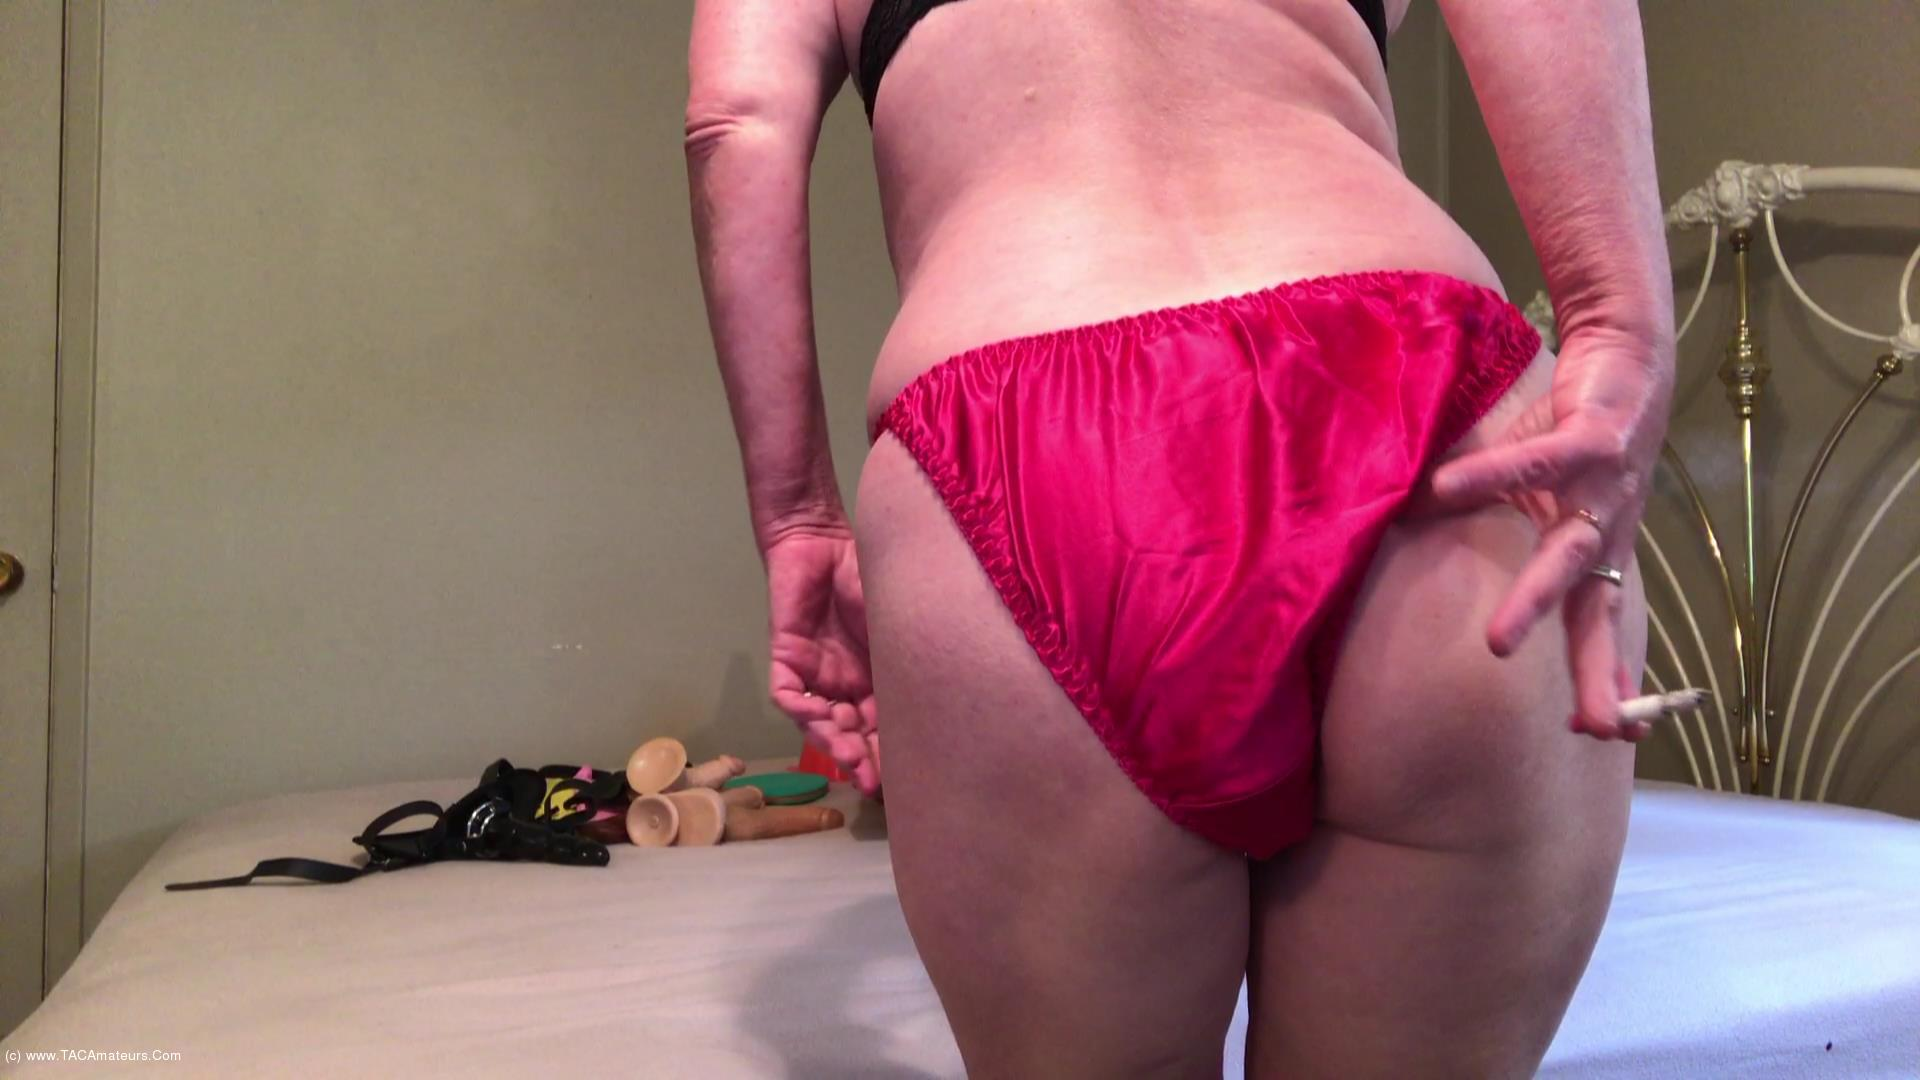 CougarBabeJolee - Smoking My Cigarette While You Worship Me scene 3